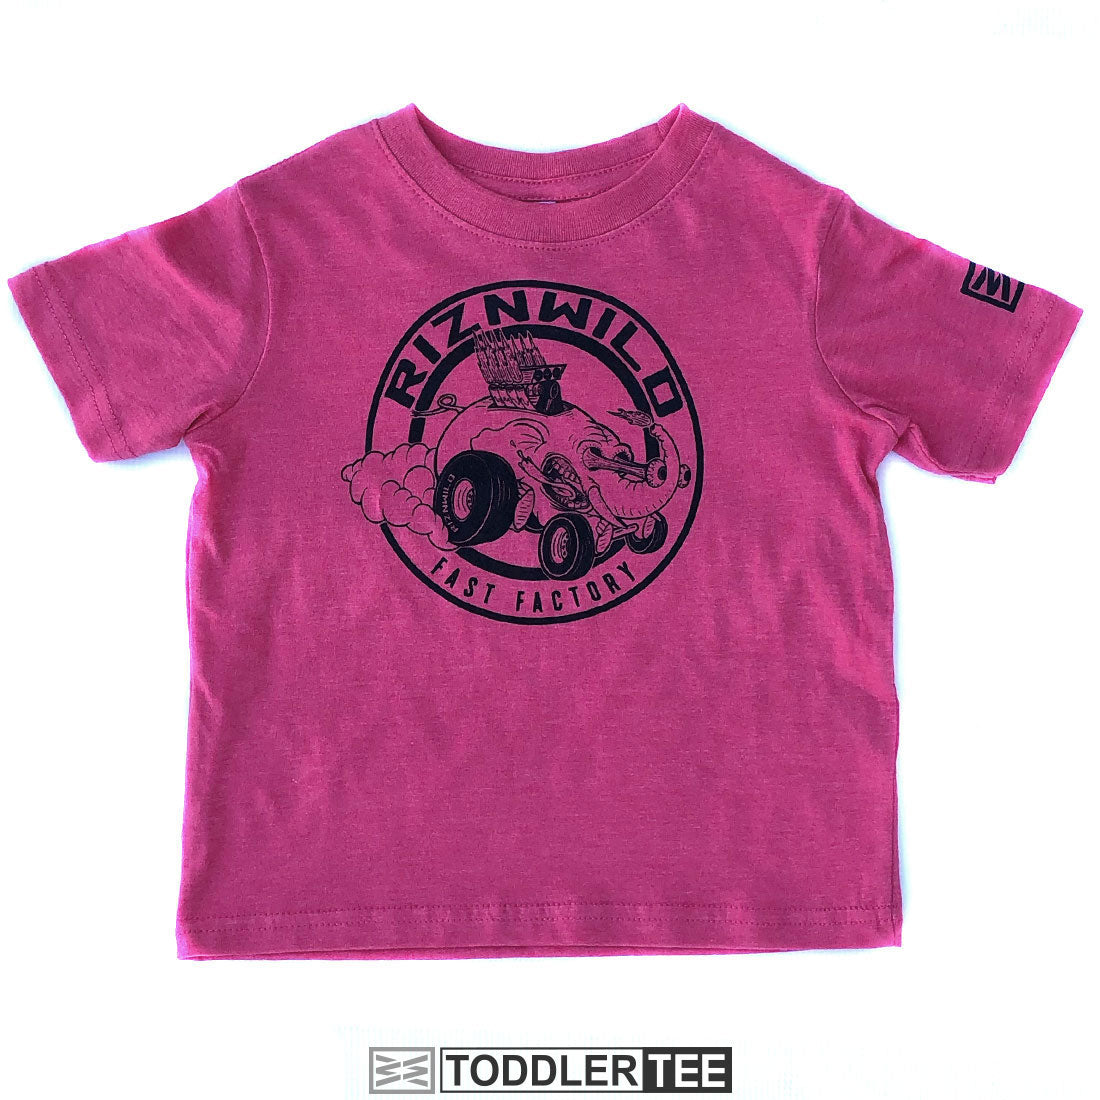 Elefast Toddler Soft Tee in Pink